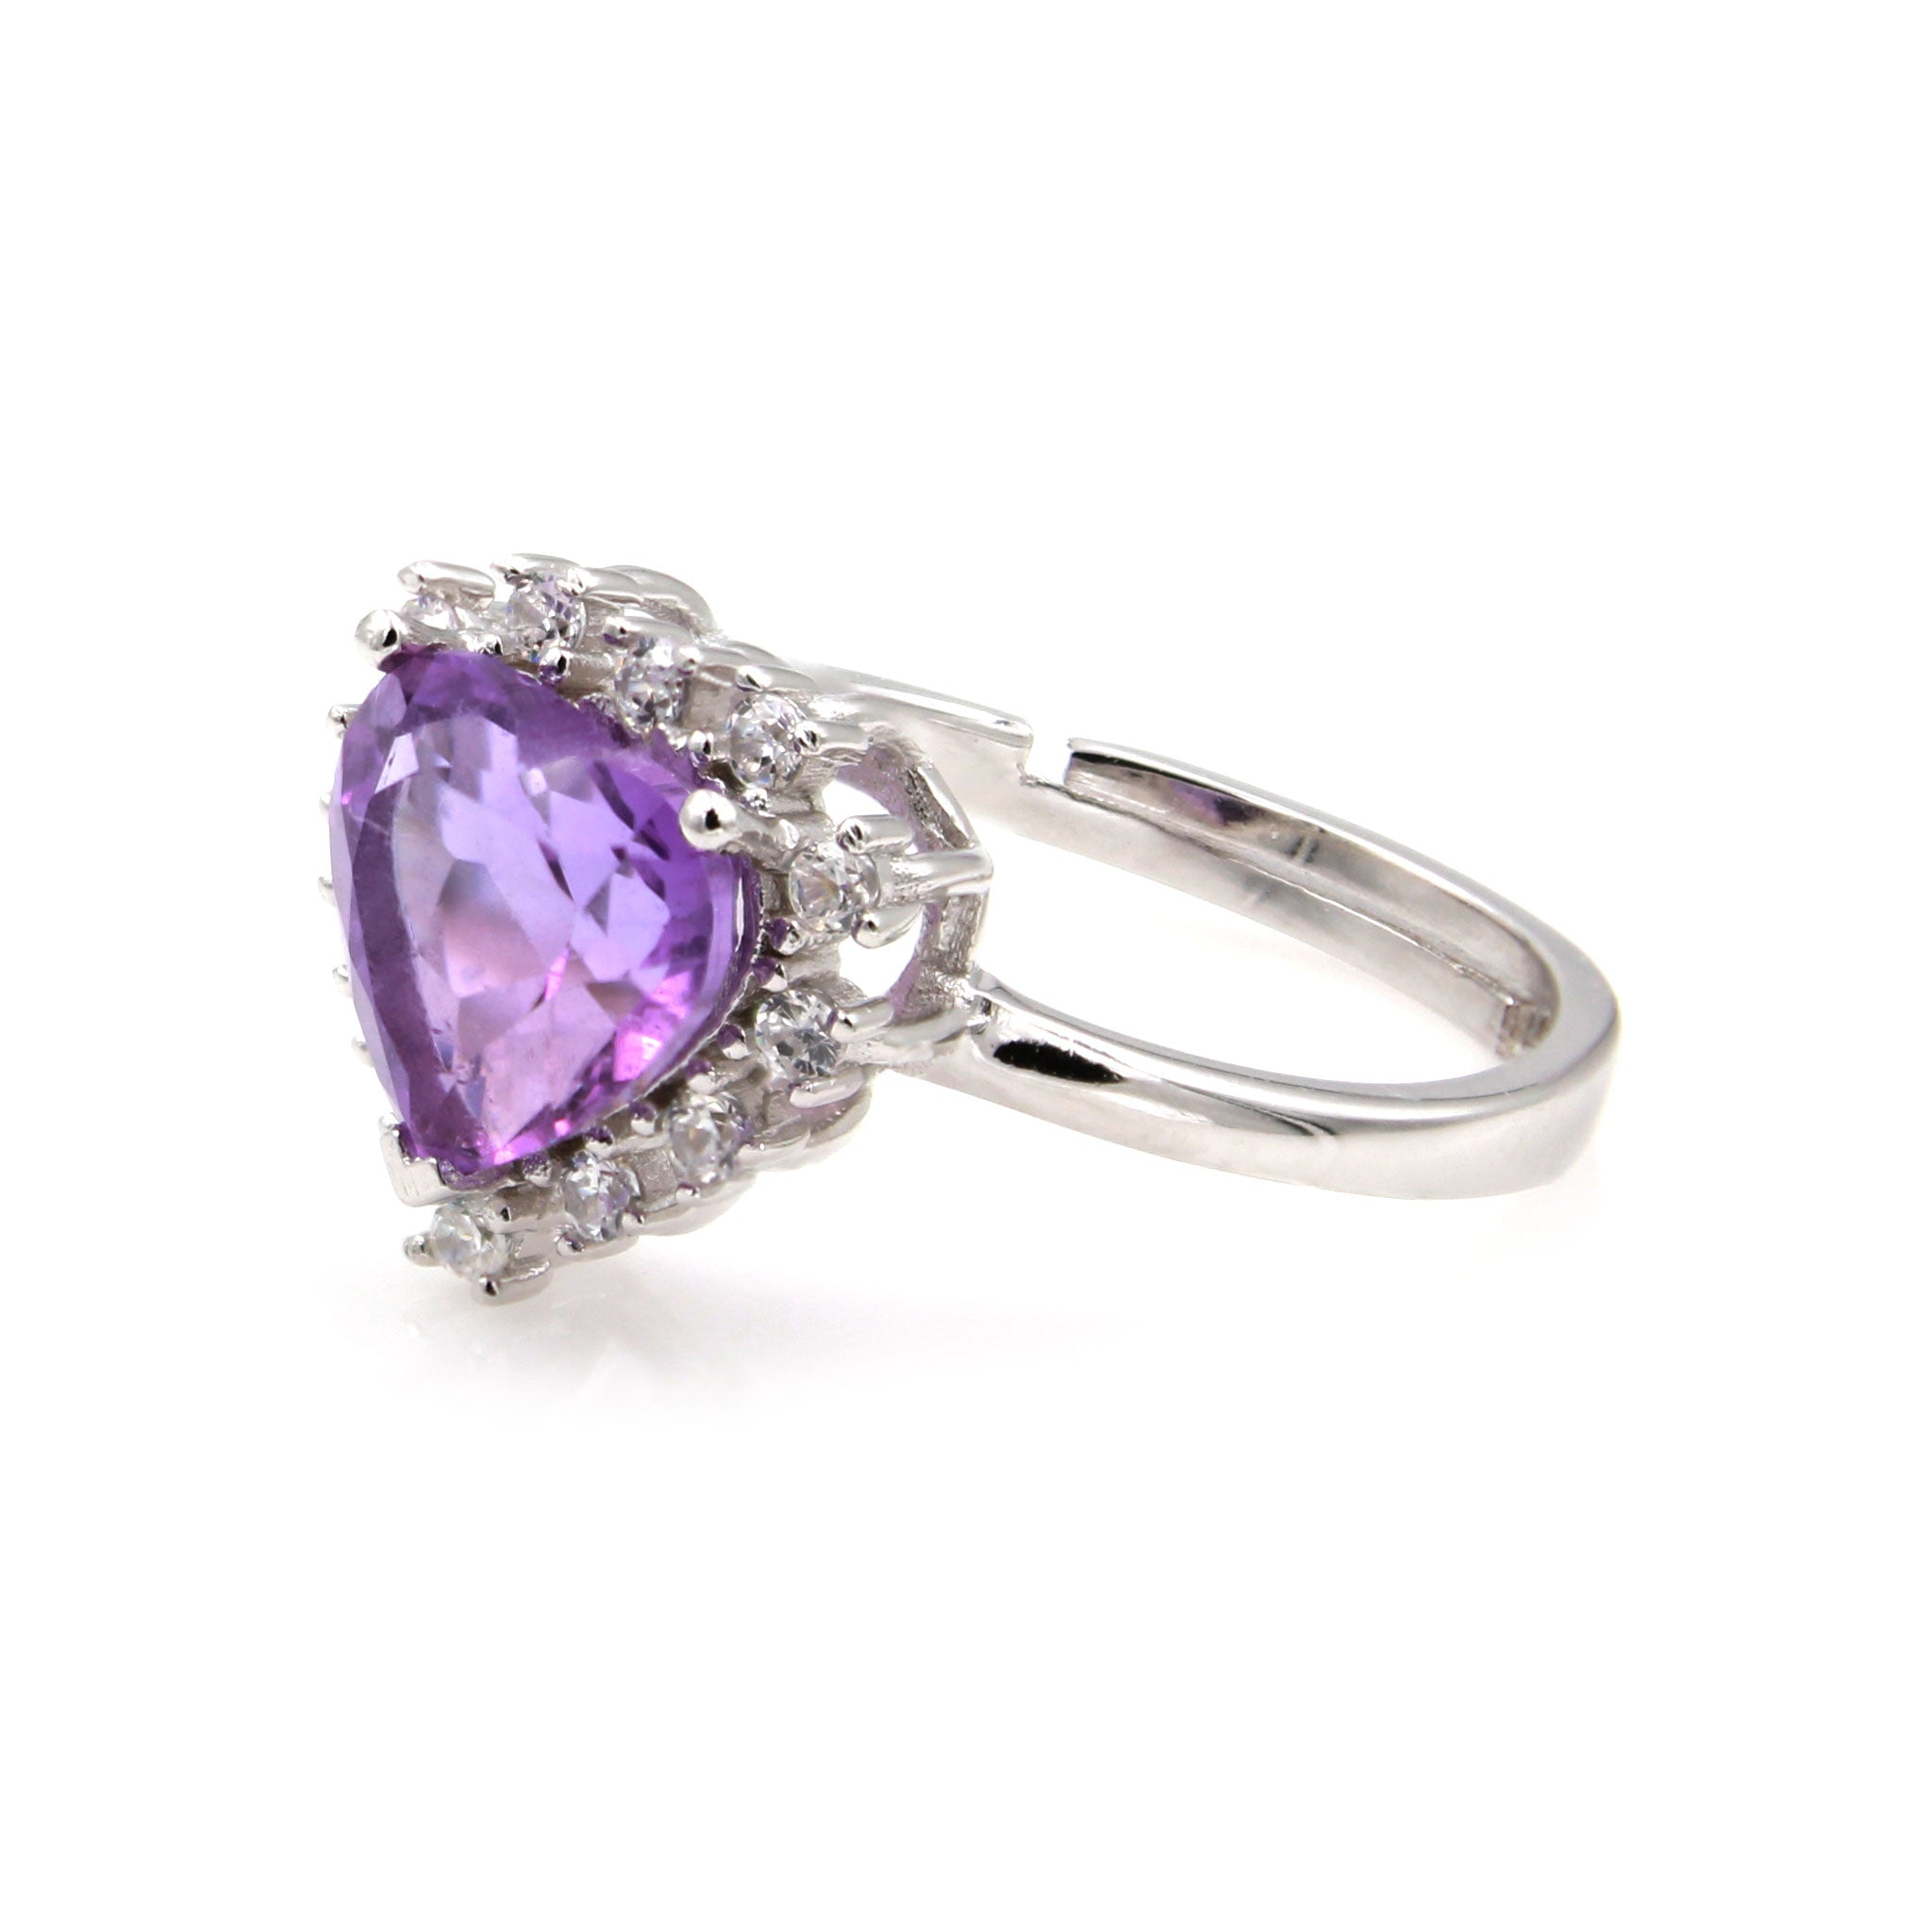 rings gemstone lily amethyst purple gold ring rose blanche engagement amethist luminous vermeil cocktail